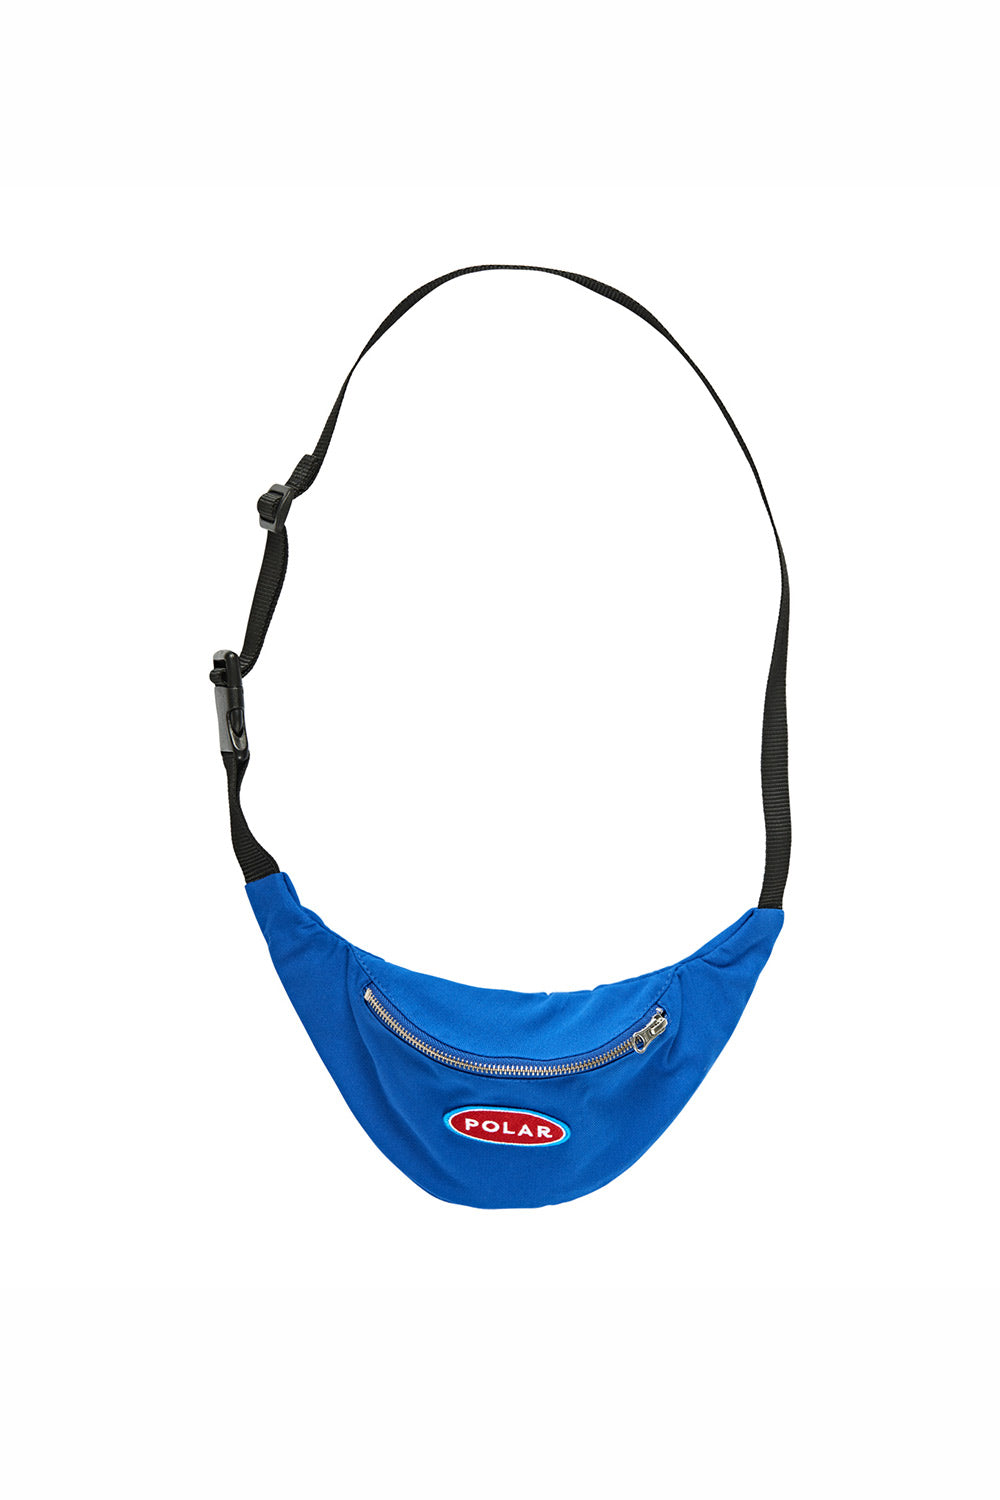 Polar Skate Co Station Logo Hip Bag - Blue | Buy Polar Skate Co Online